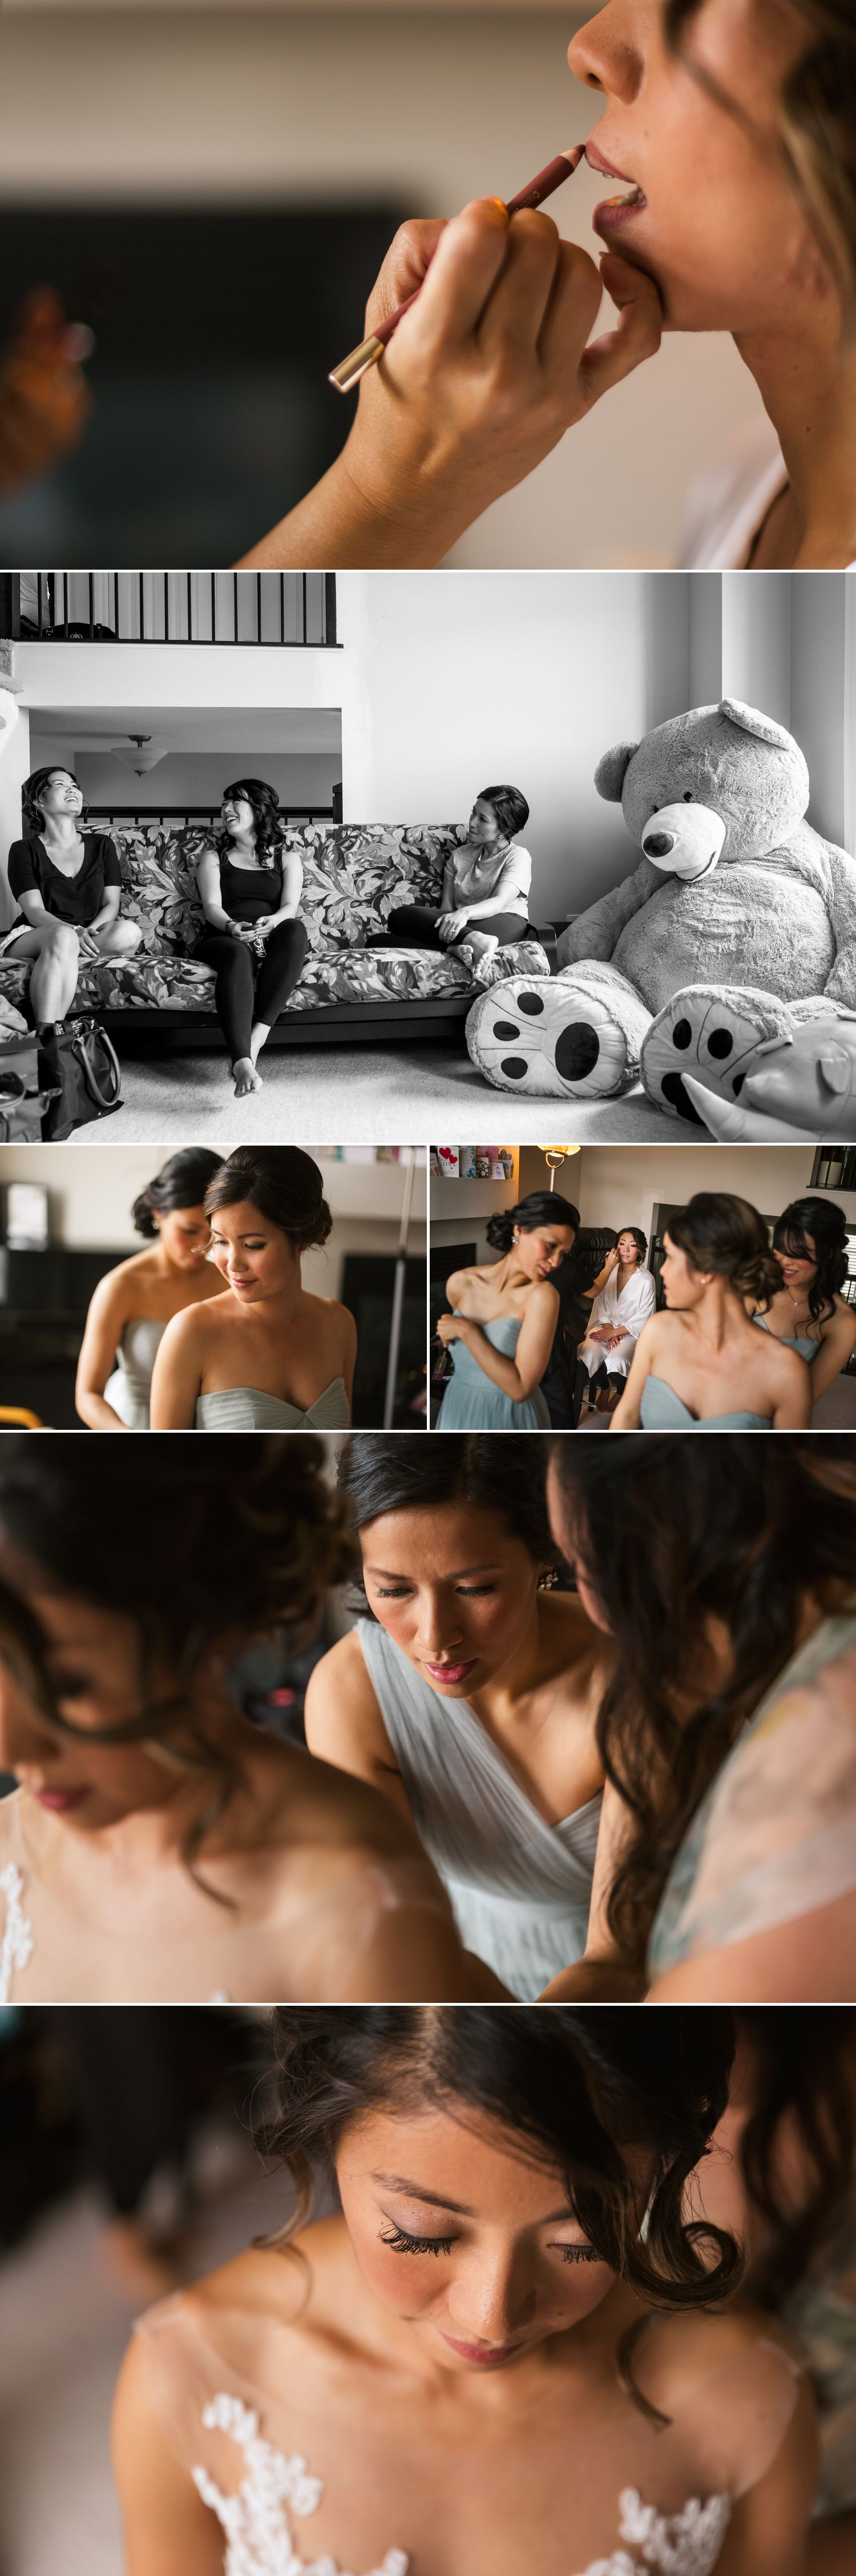 The bride with her bridemaids getting ready at her home in Ottawa